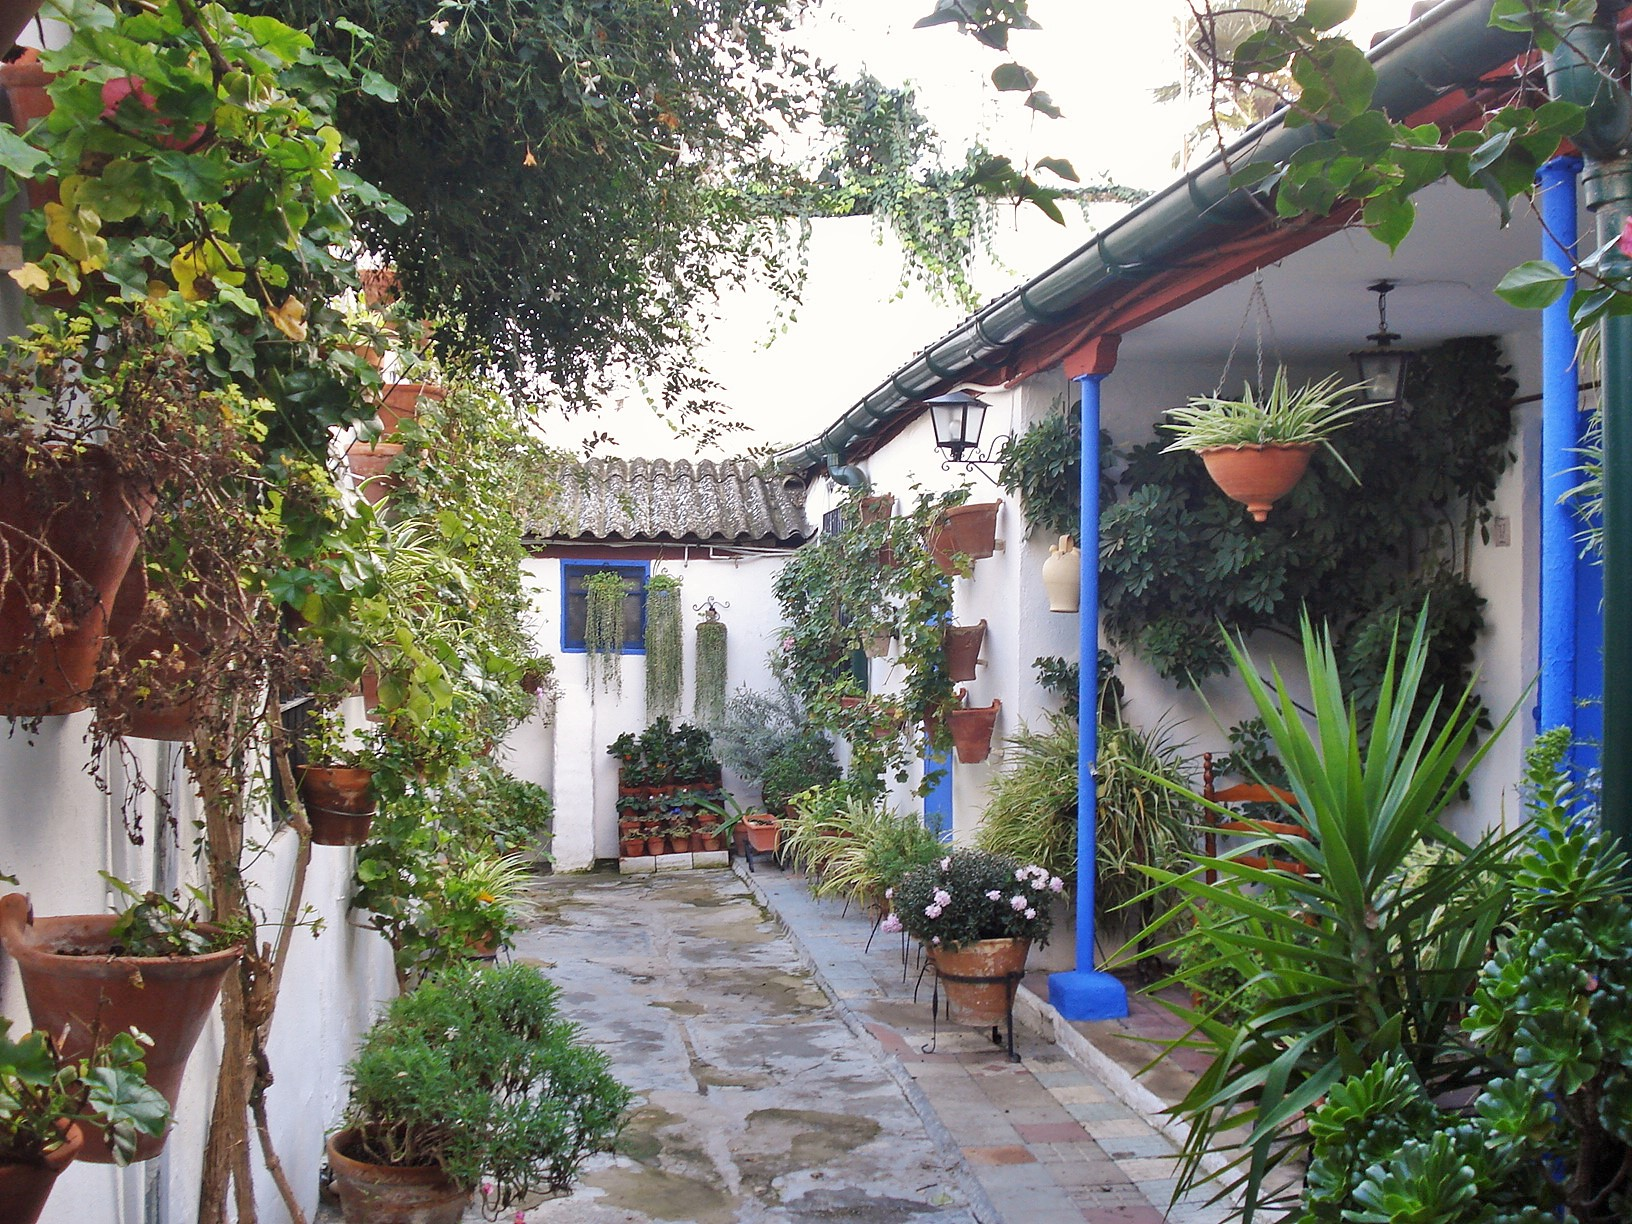 Casa Del Patio In Cordoba Vertical & Container Gardening. Seat Cushions For Patio Furniture. Cast Aluminum Patio Furniture Dallas Tx. Modern Patio Furniture Commercial. Wooden Patio Furniture Los Angeles. Landscaping Ideas Around Patios. Lowes Outdoor Furniture Lounge Chairs. Providence Patio Furniture Replacement Cushions. Free Stone Patio Designs